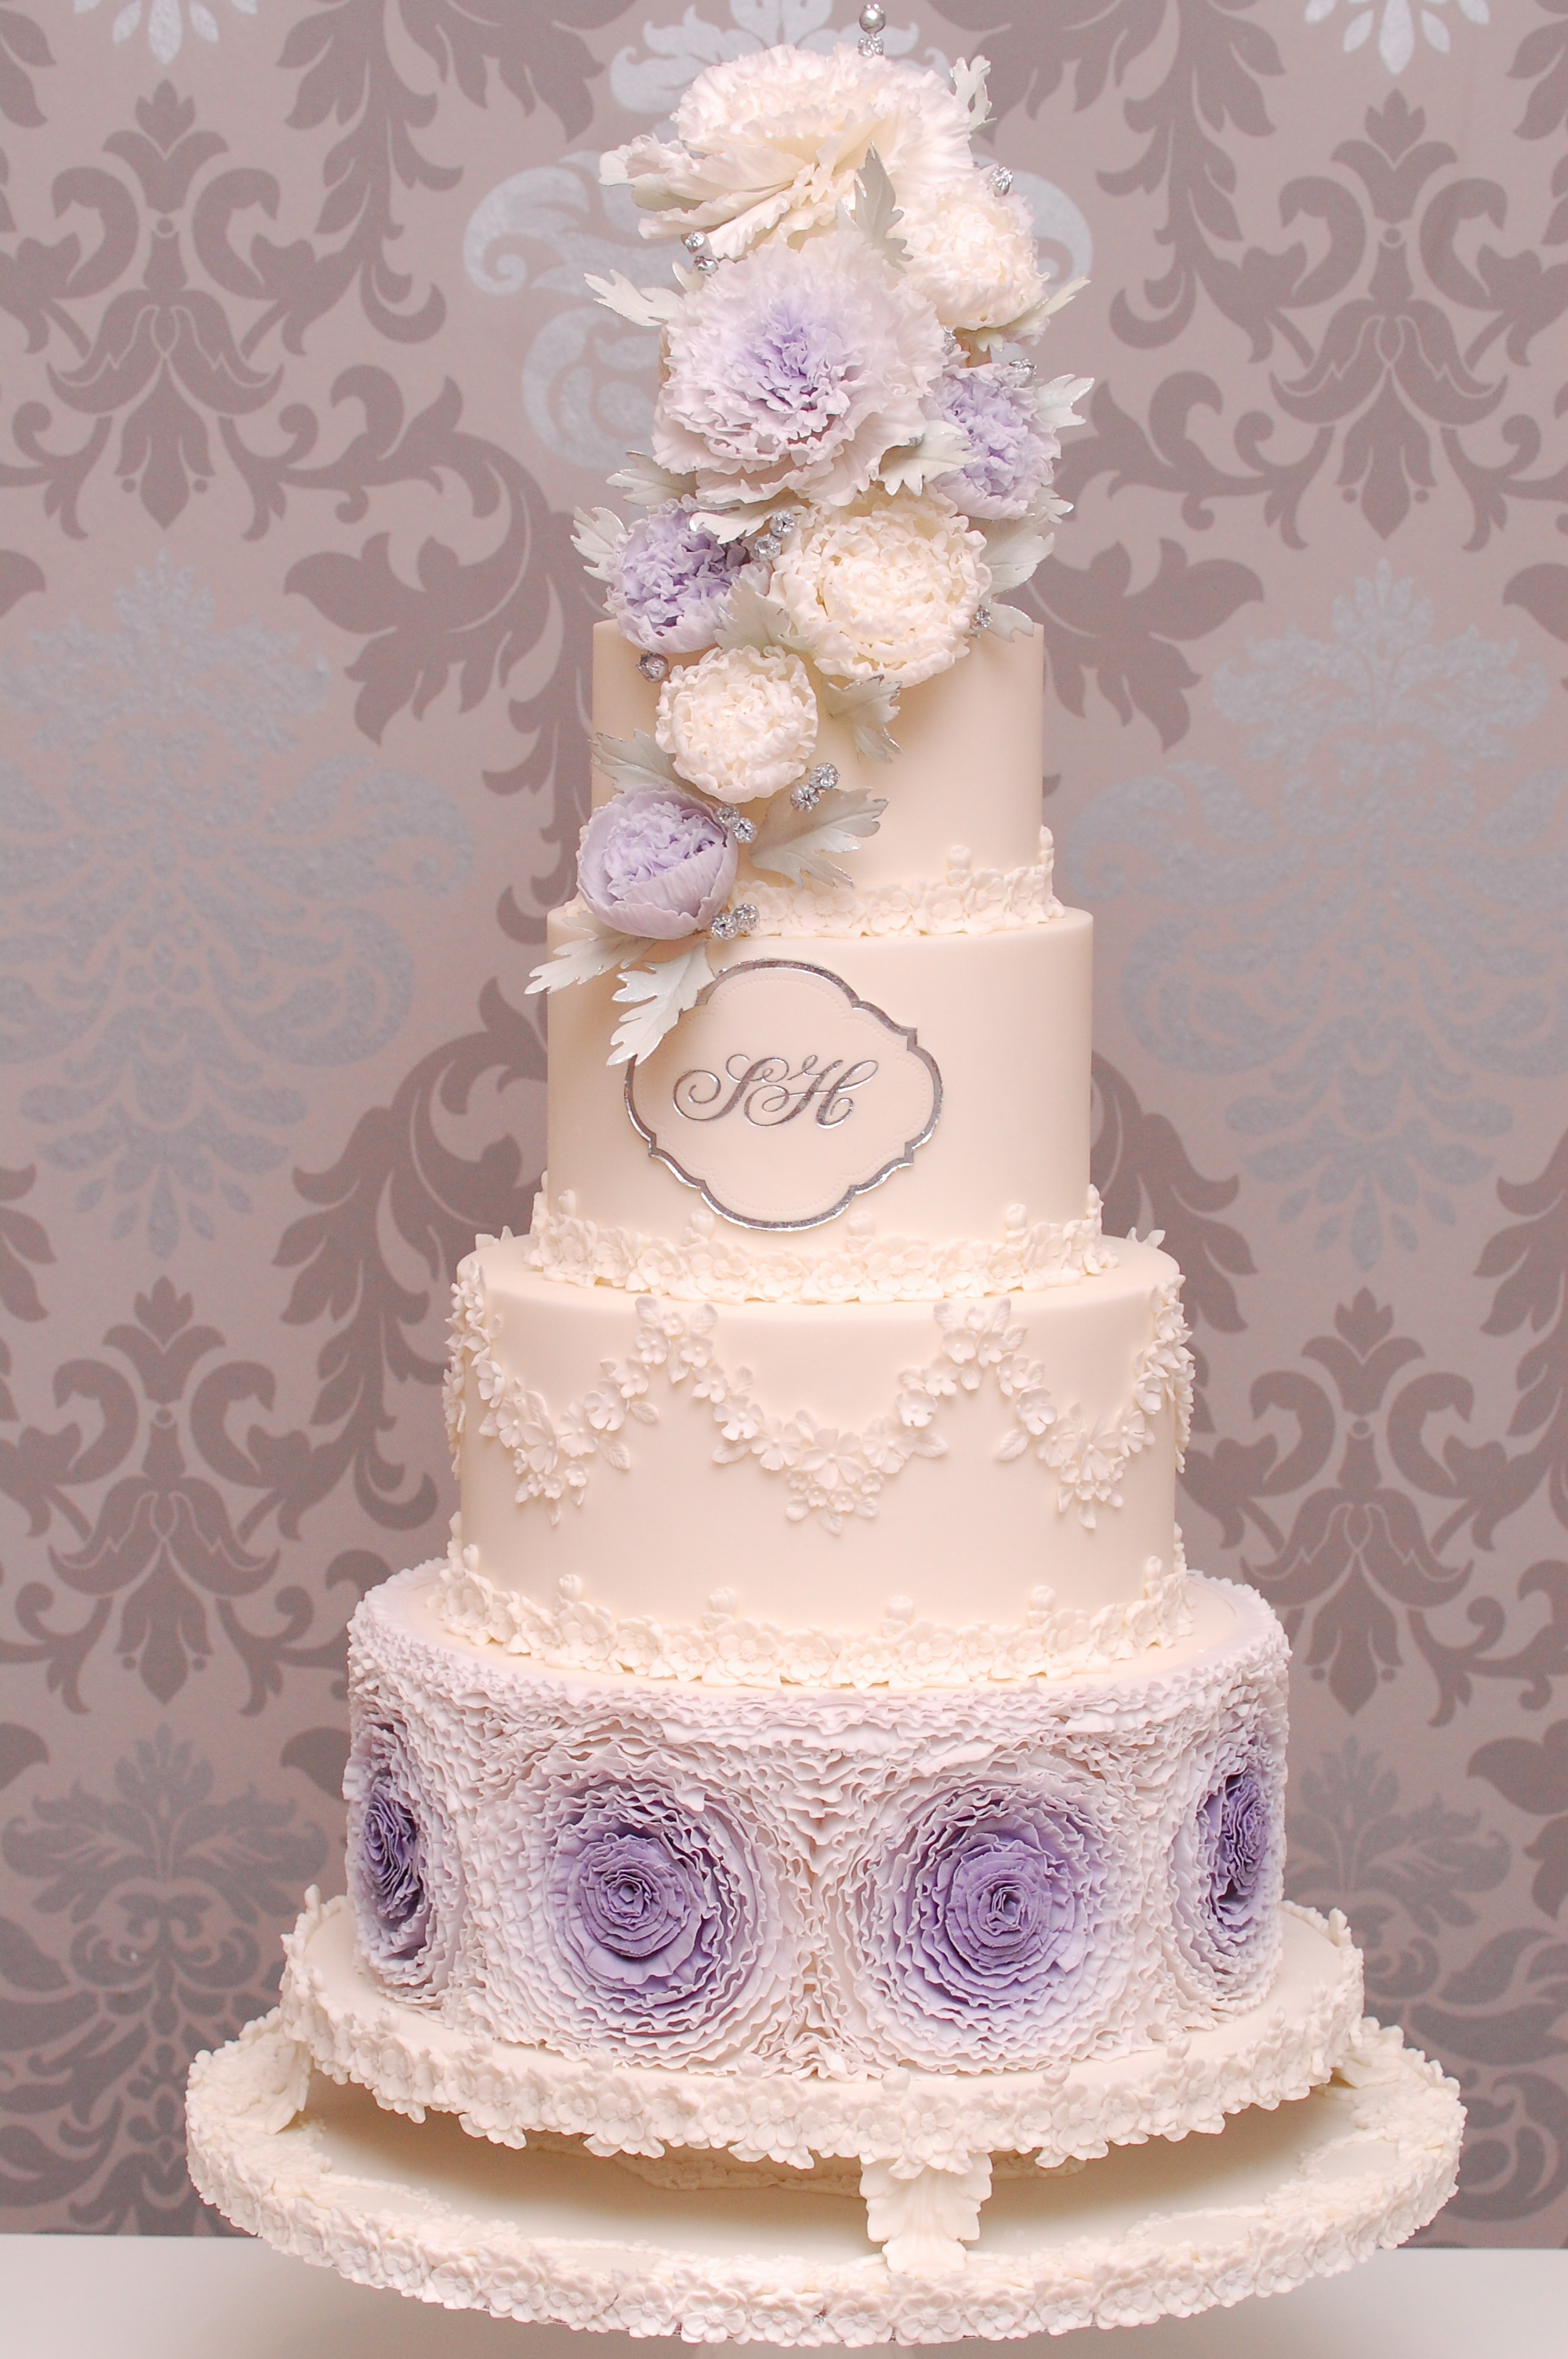 White and purple rosette wedding